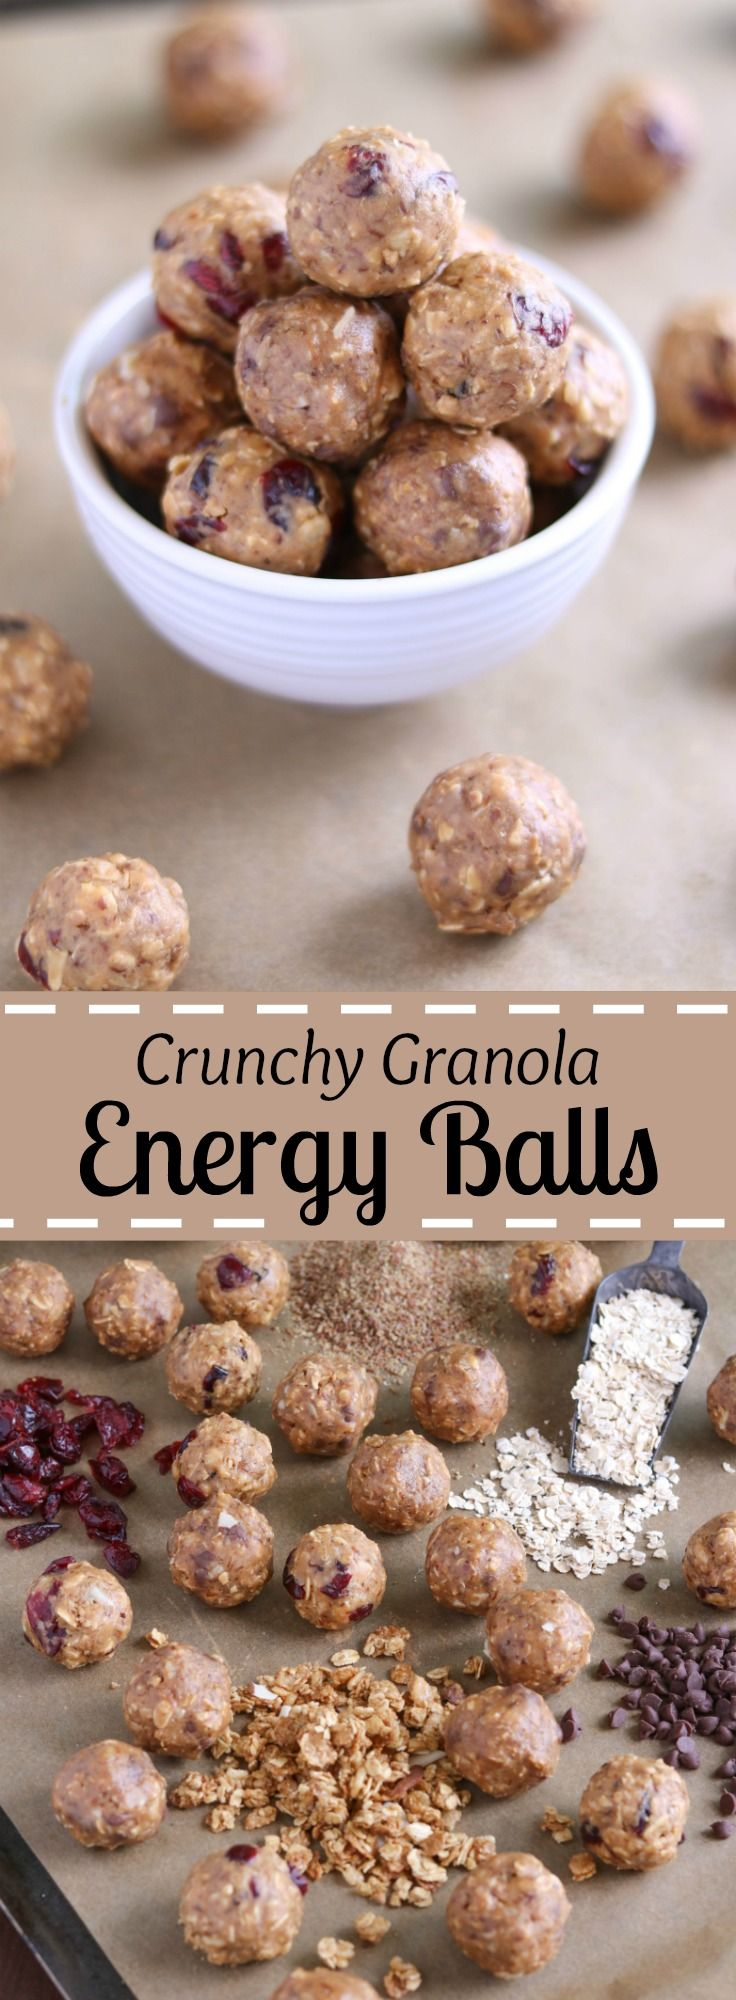 Freezable, no-bake Energy Balls with protein and whole grains! These Crunchy Granola Snack Bites will keep you satisfyingly full and power you through whatever the day might hold. A perfect healthy snack recipe, or a grab-and-go, make-ahead breakfast recipe! With peanut butter, oats, flax, and granola, plus dried fruit or chocolate chips - these energy bites are crunchy, chewy, and delicious! A healthy recipe with a few simple ingredients you probably have on hand…